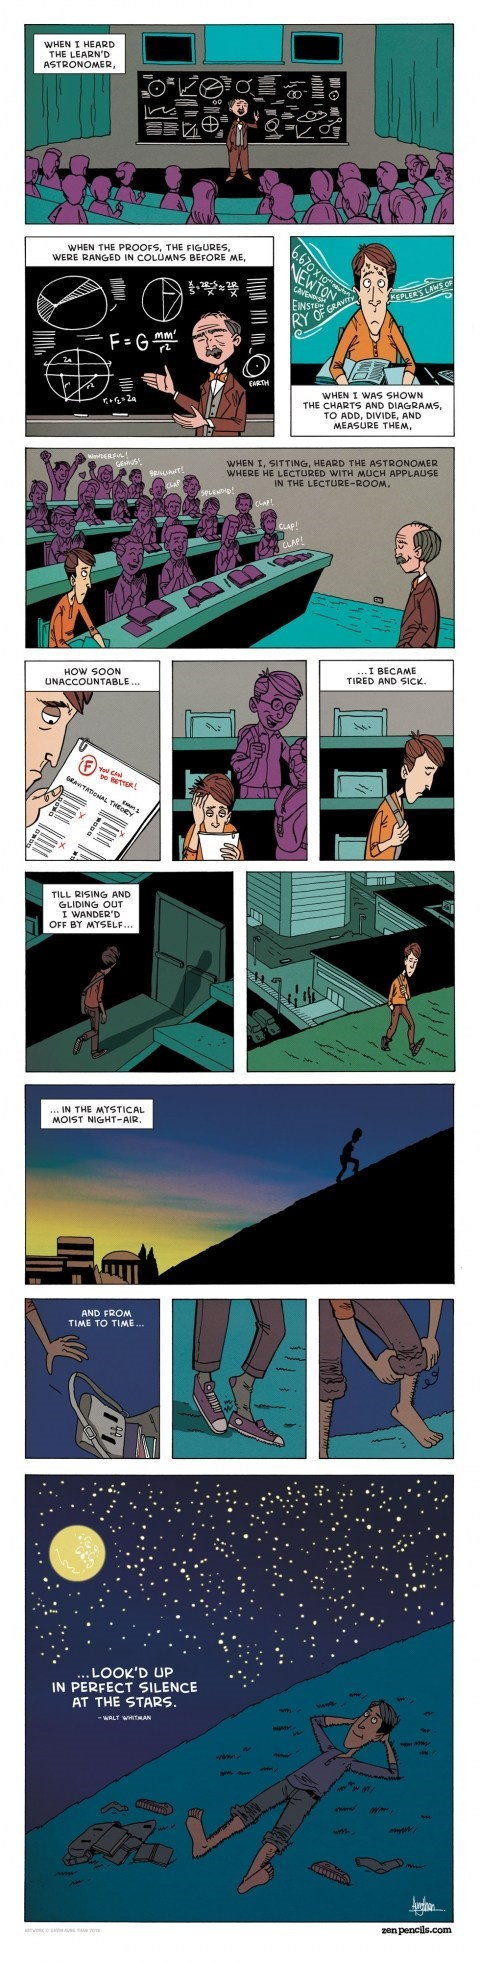 zen pencils,class is in session,walt whitman,Astronomy,poetry